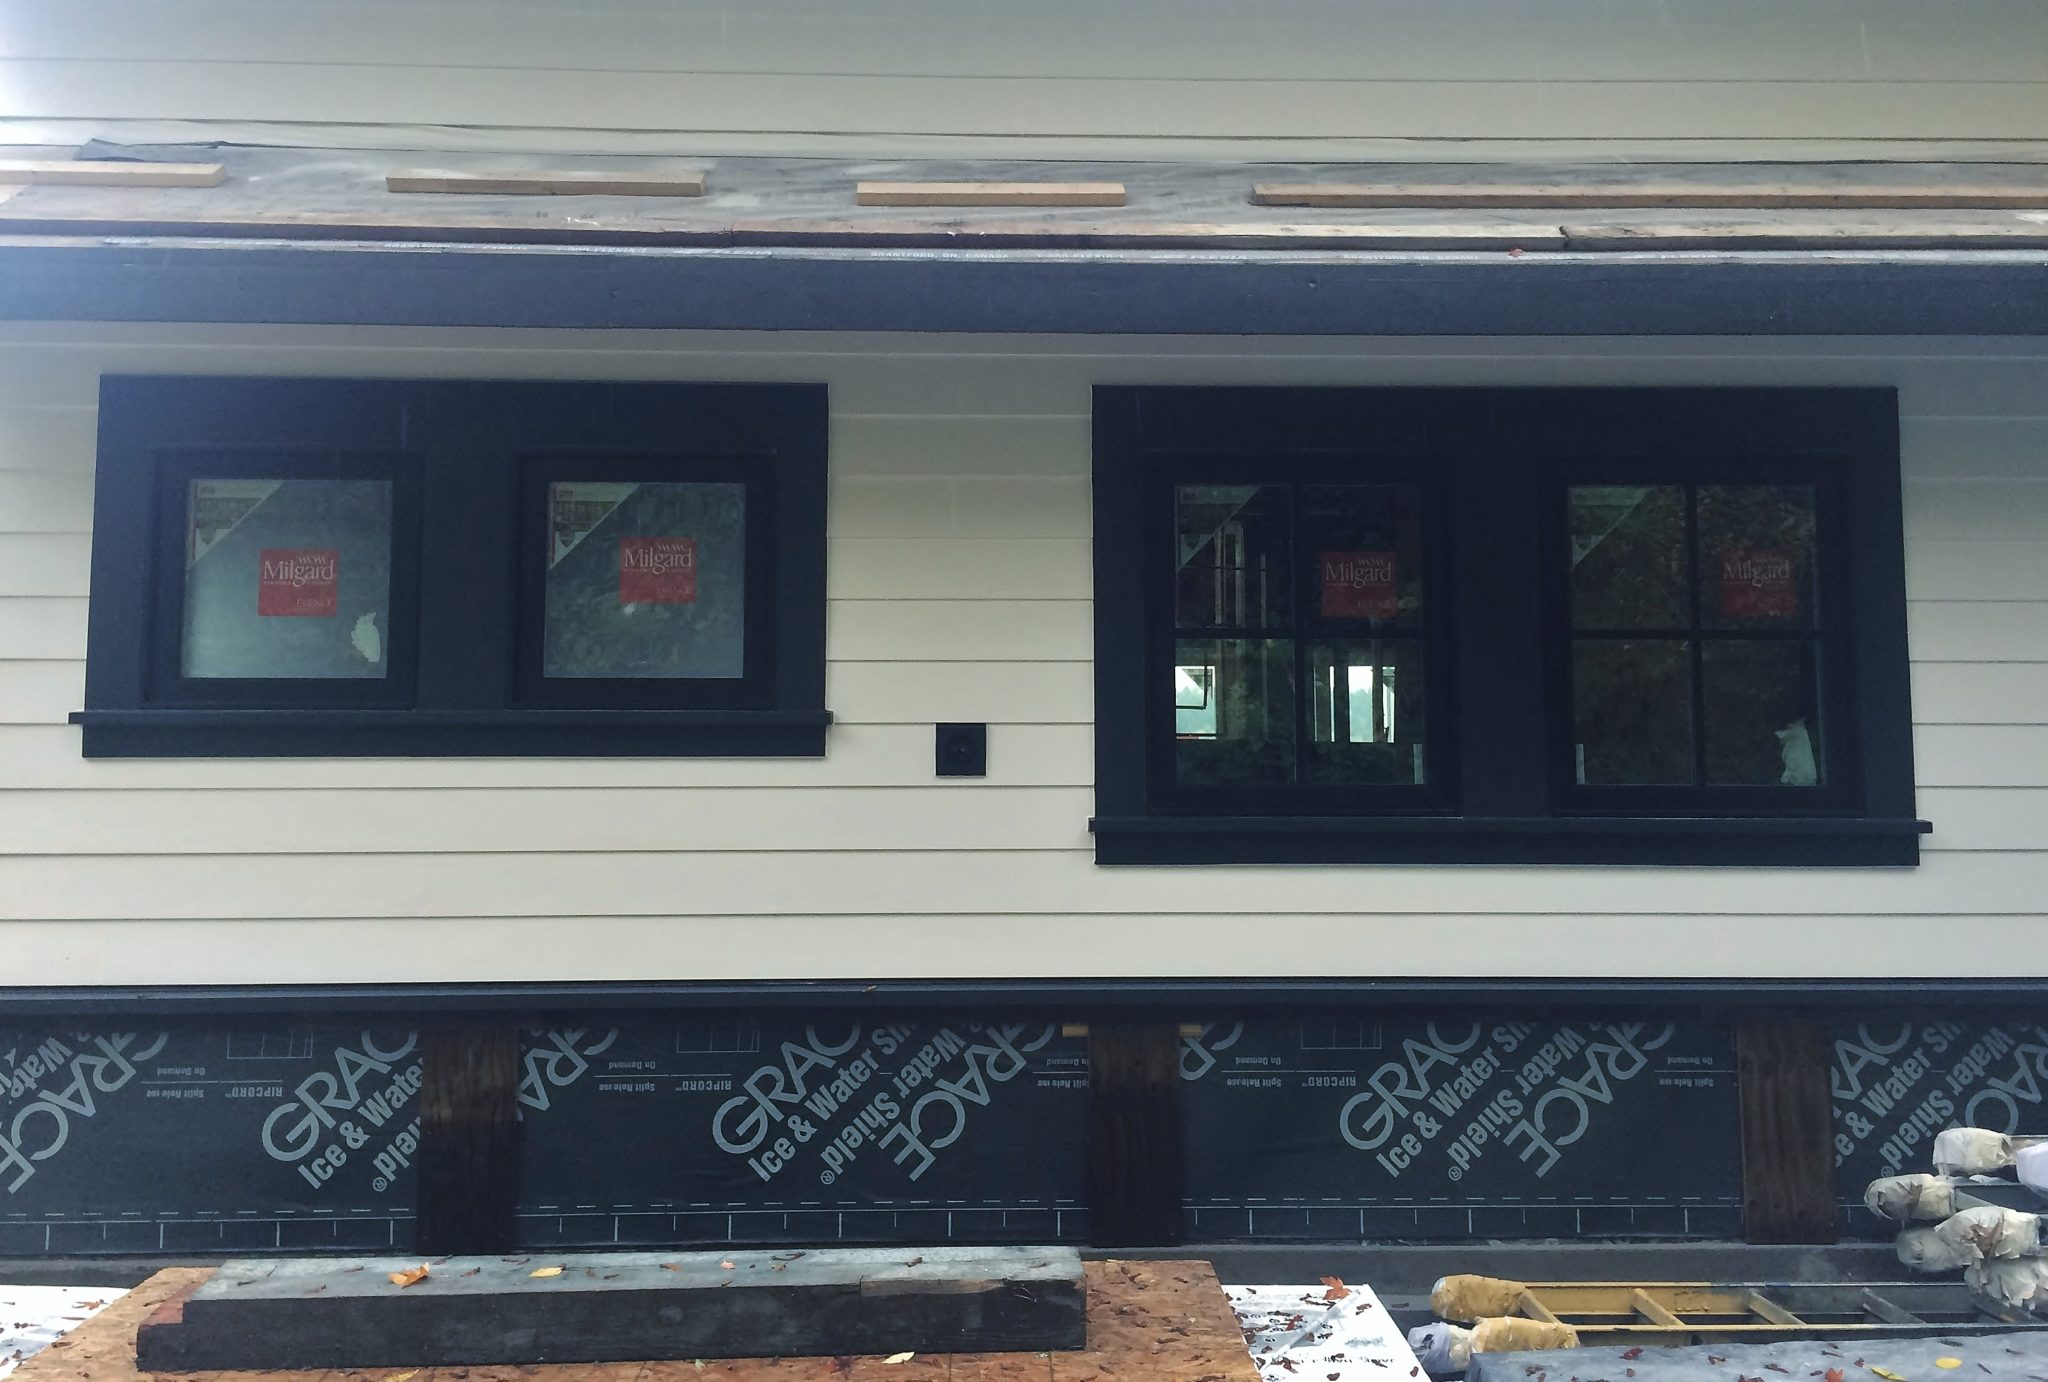 Cta Design Builders Seattle Architect Wiring A Shoebox House While We Finish Up The Inside Weve Made Leaps And Bounds On Lake Remodel Exterior Installed All Windows Window Door Trim